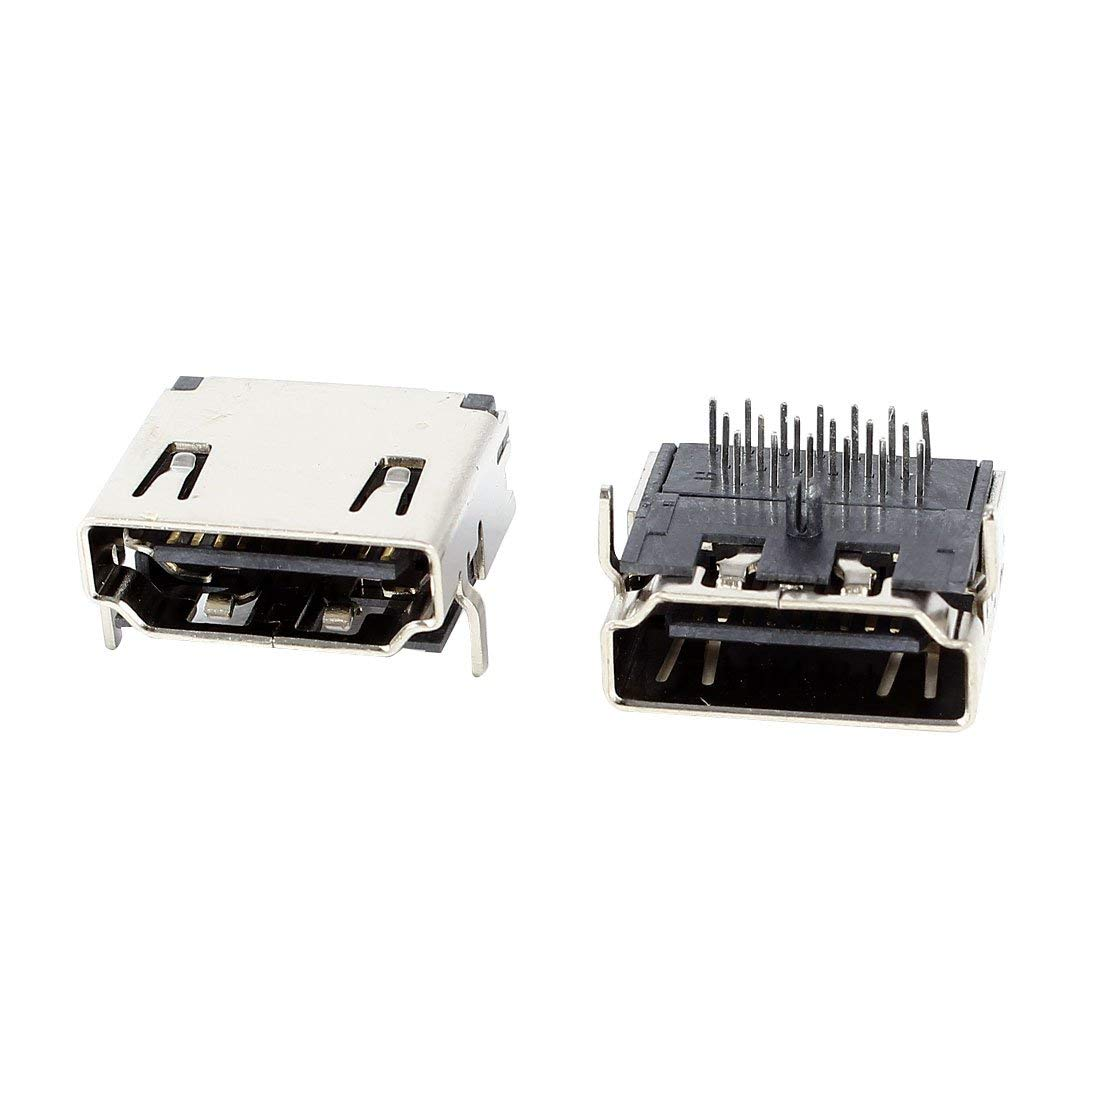 2 Pcs HDMI Type A Female Connector PCB Jack 19pin SMT 90 Degree Socket